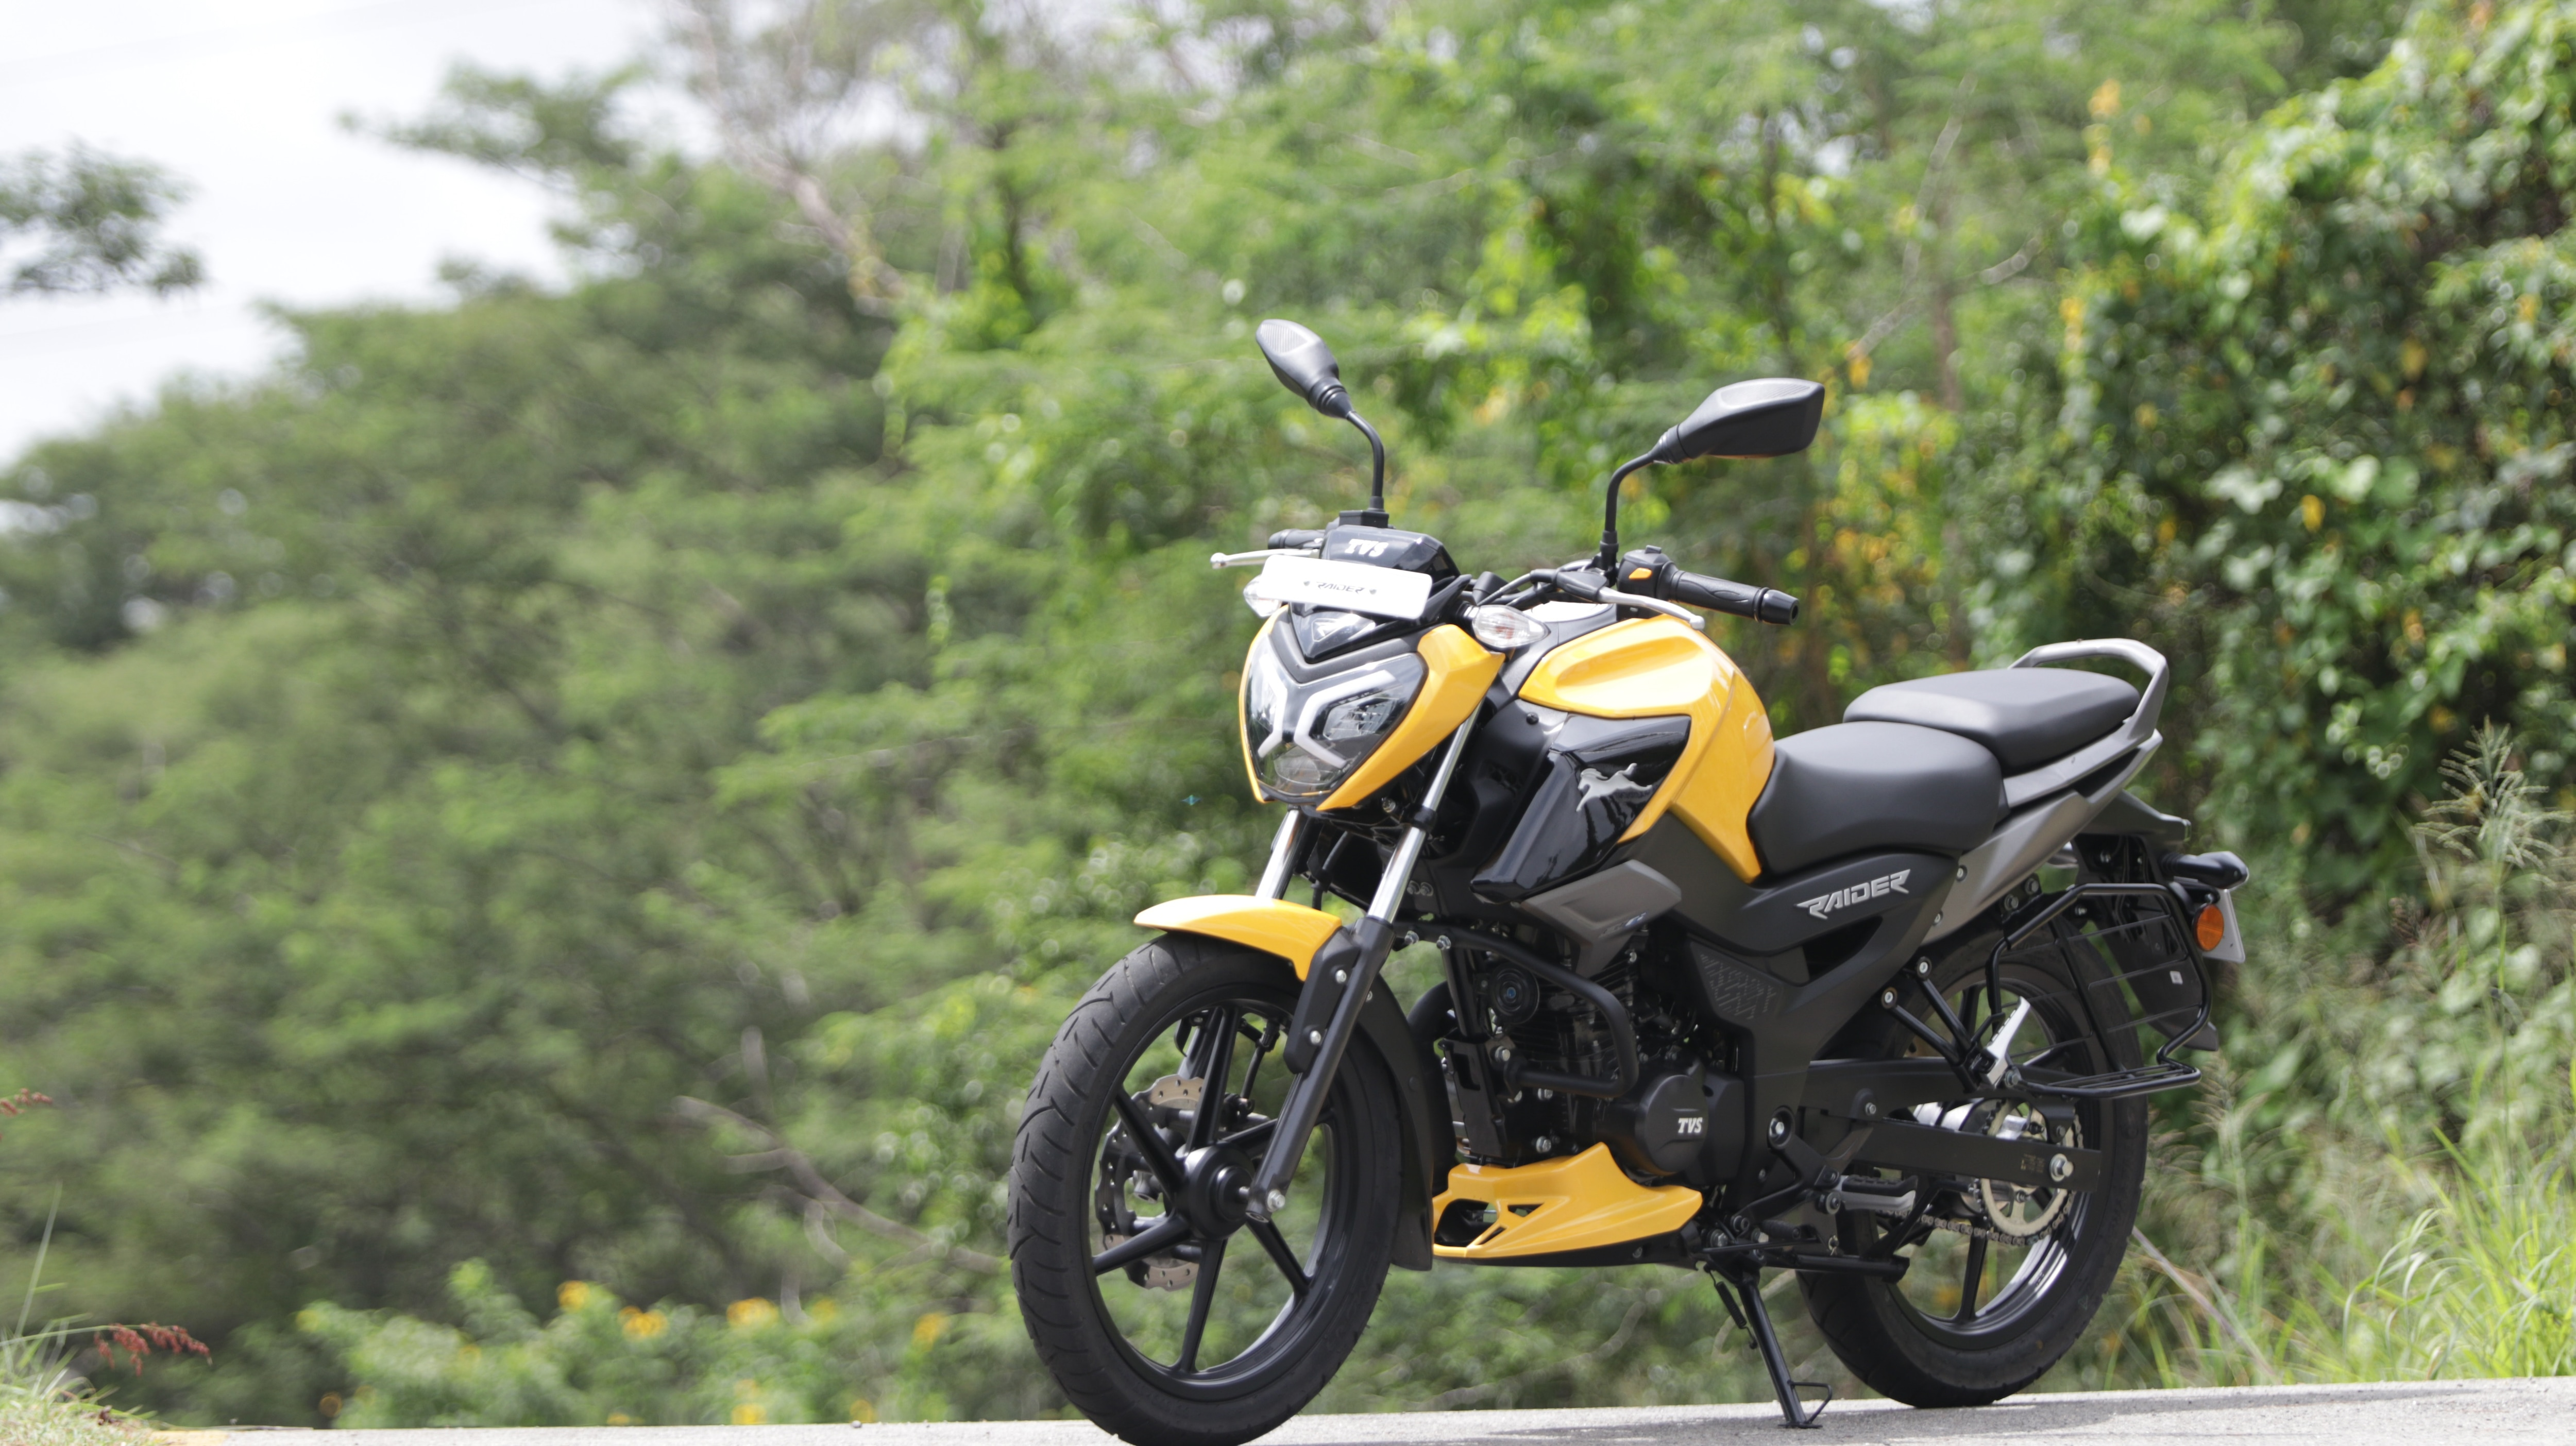 TVS Raider doesn't share any of its body components or mechanicals with the existing TVS products, making it a fairly new model from the ground up.